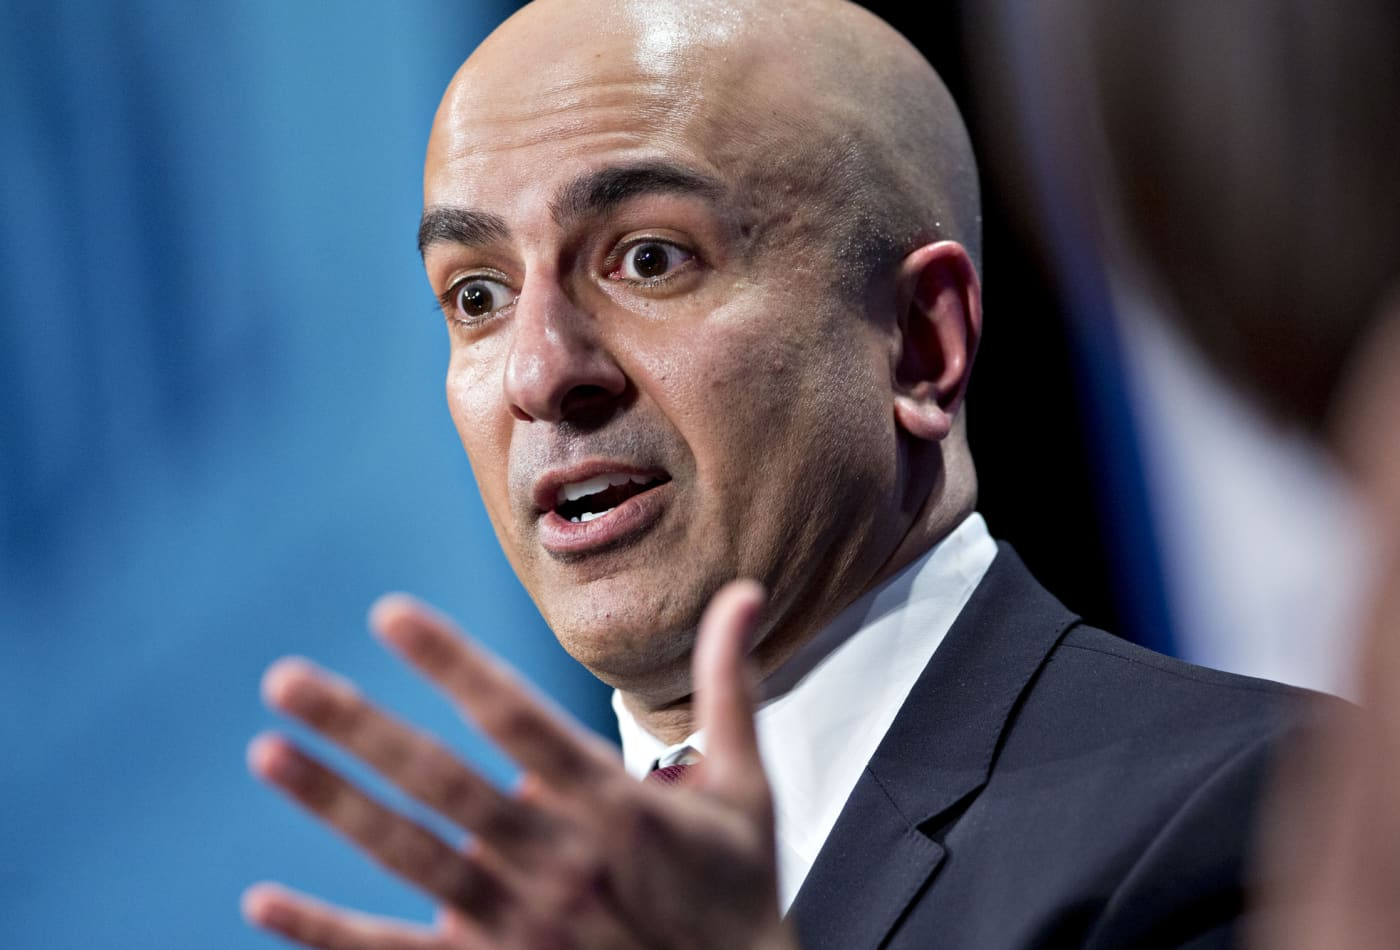 Watch live — Fed's Neel Kashkari speaks at Harvard on coronavirus and the economy